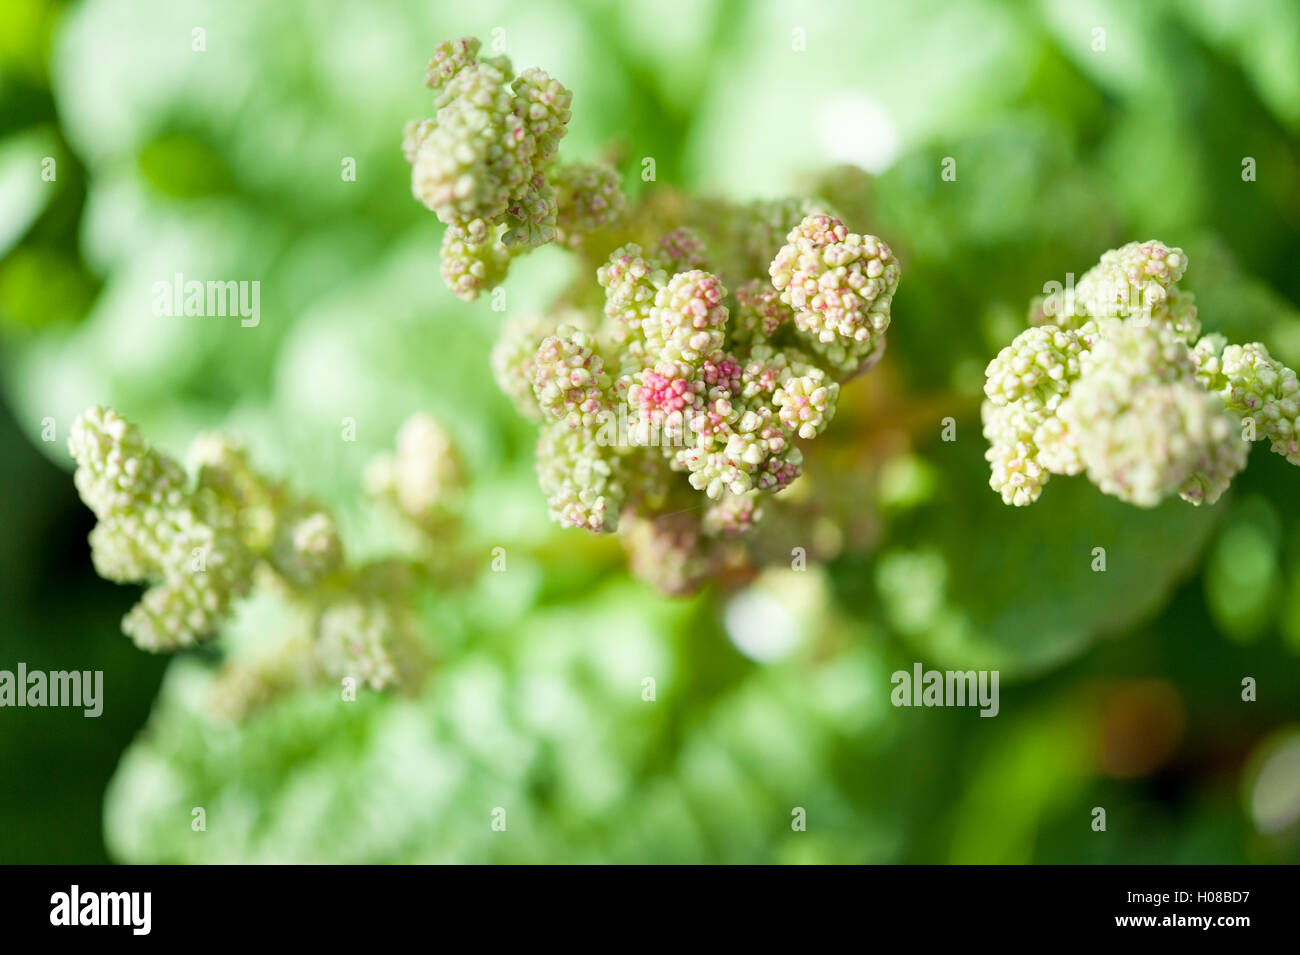 Flowers of a rhubarb plant, Rheum rhabarbarum, that has bolted or gone to seed. Stock Photo